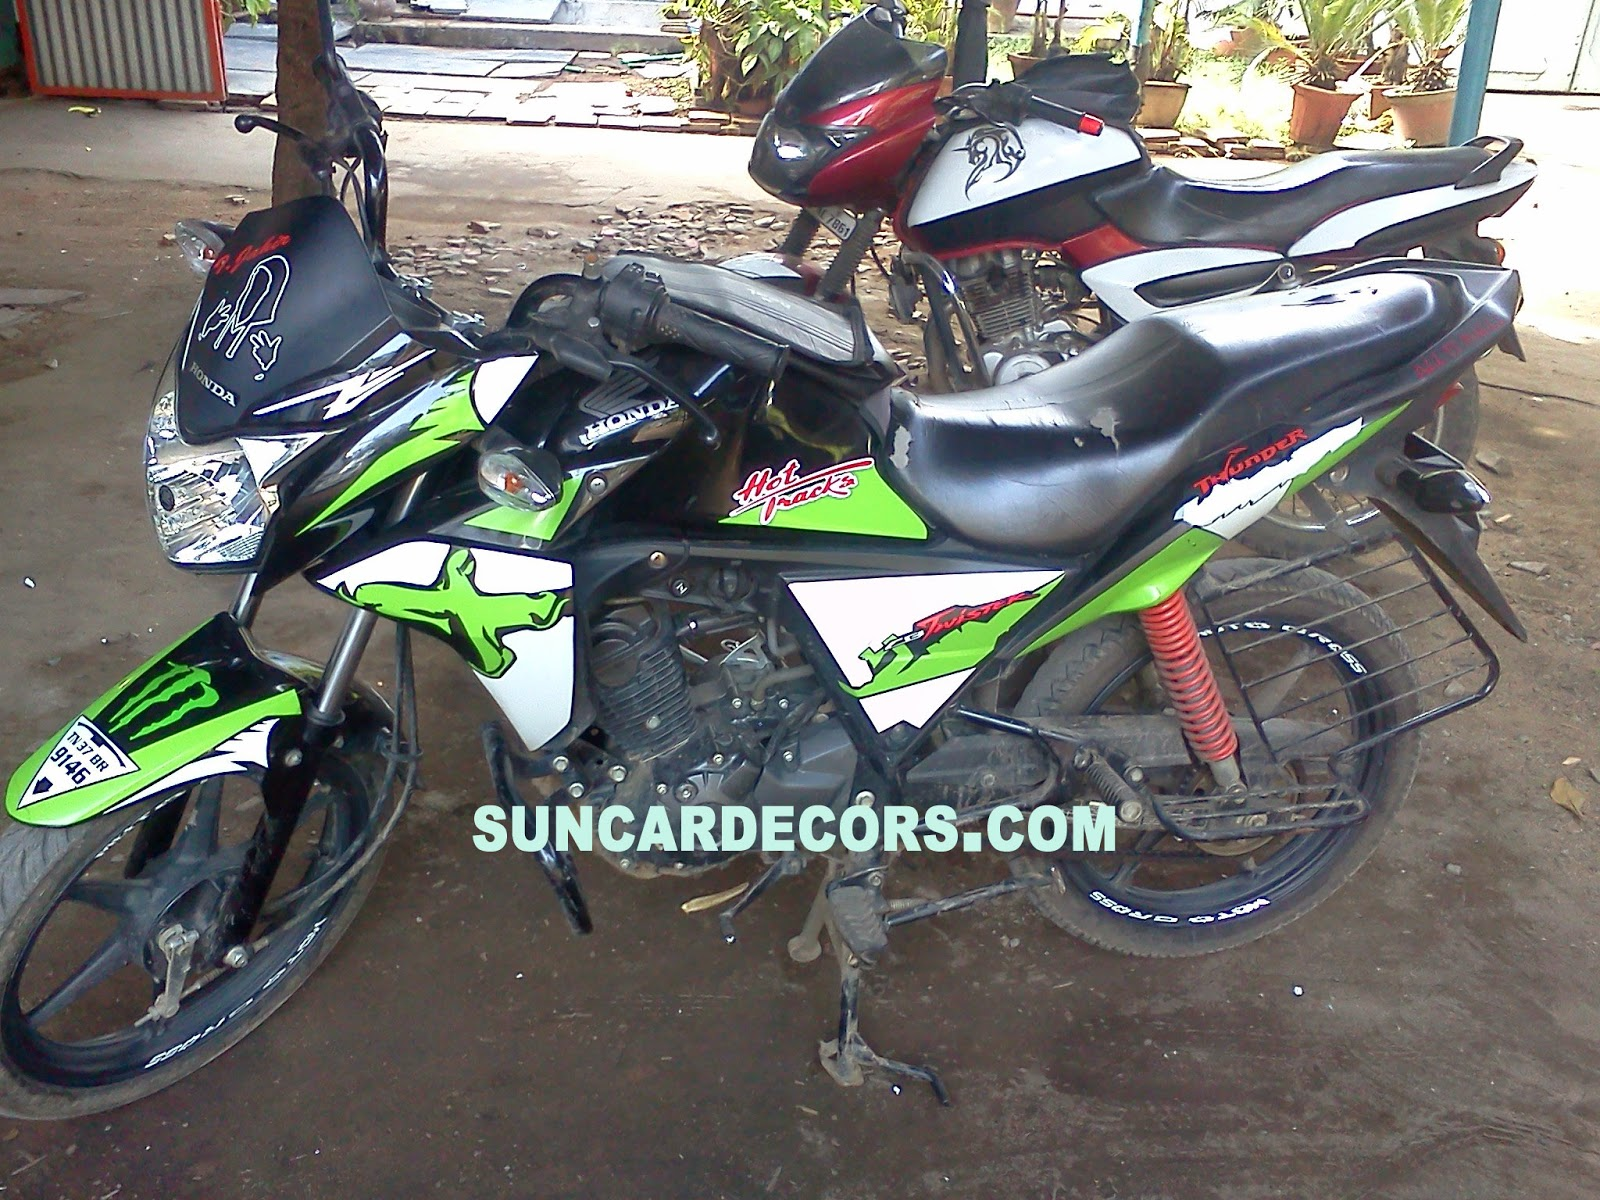 Bike stickering designs for pulsar 150 - Honda Twister Black Colors Stickering Designs